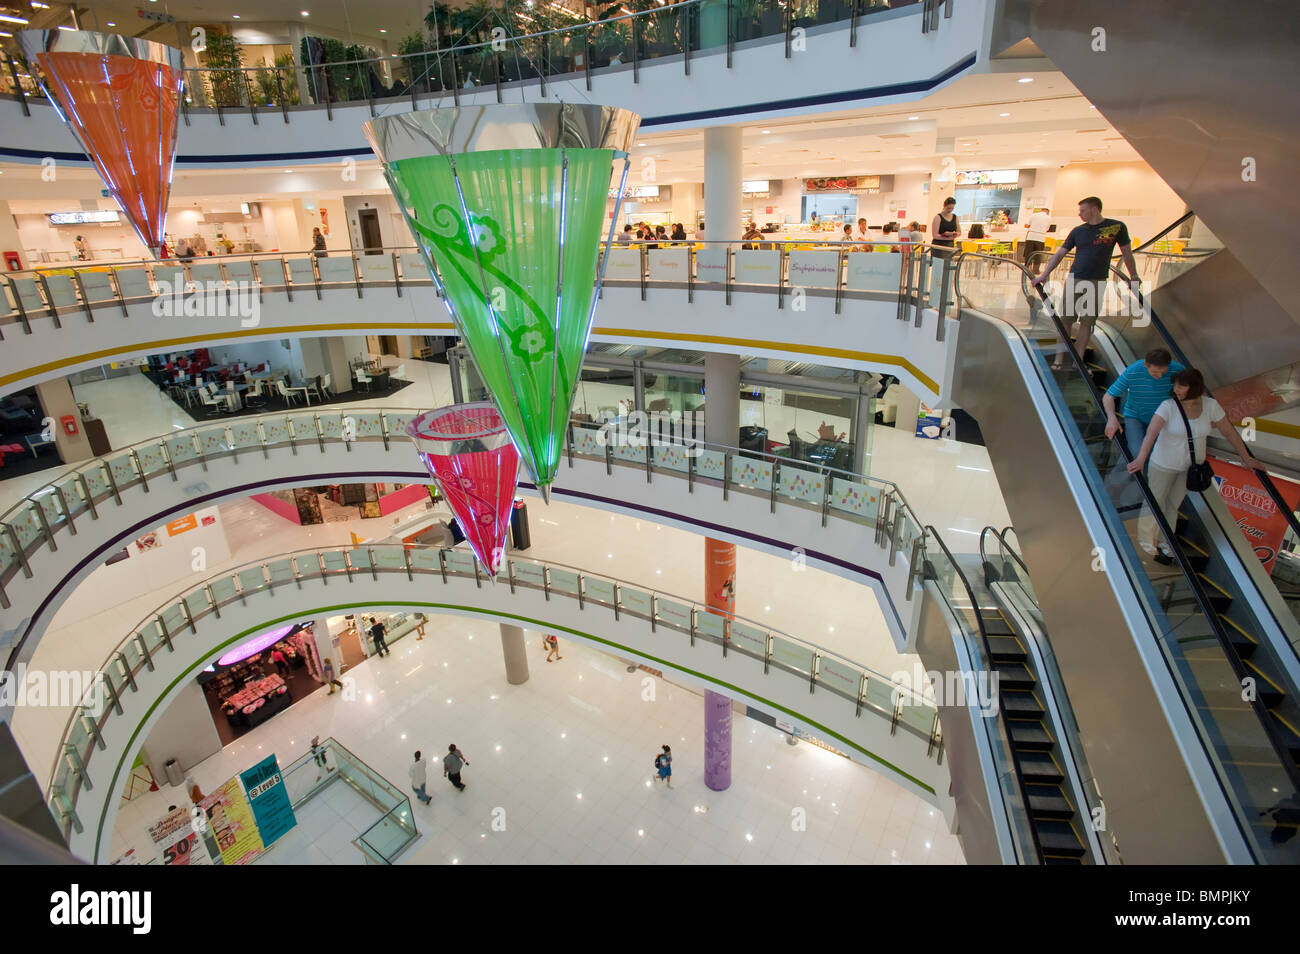 The Verge Shopping Centre in Little Indiqa - Stock Image